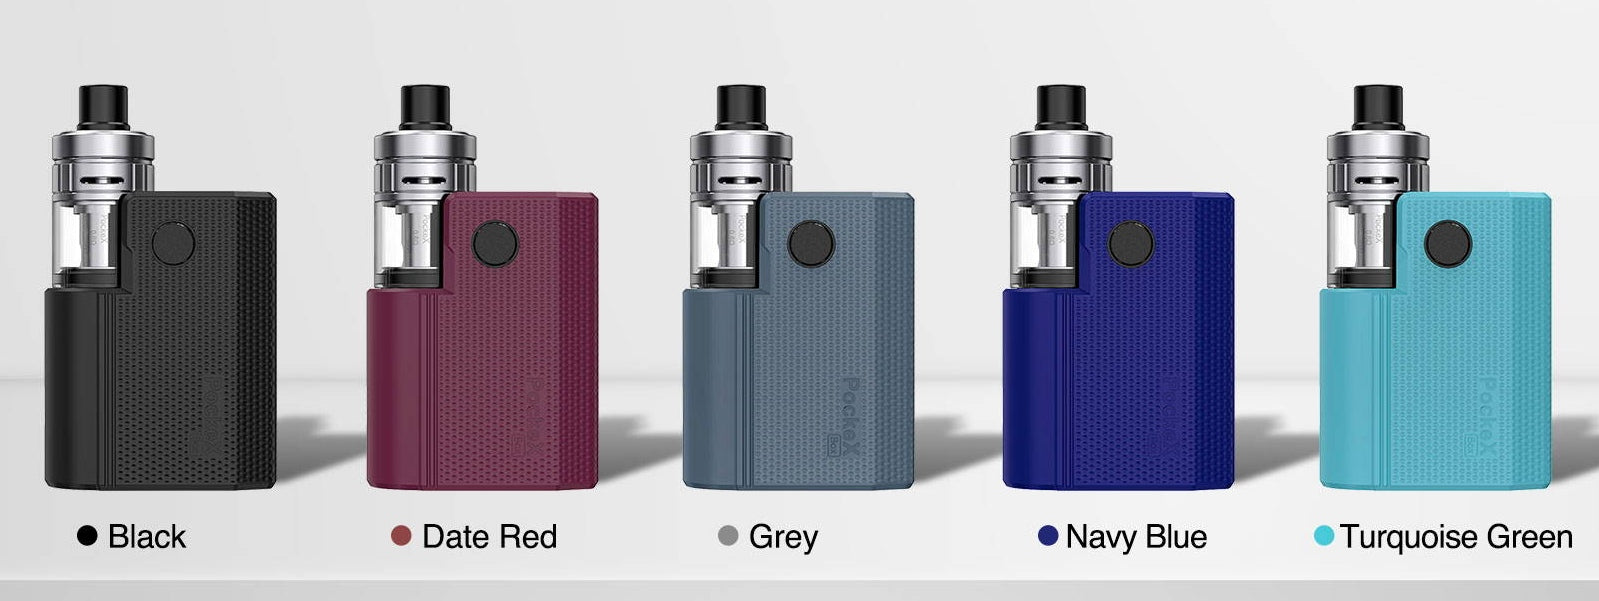 PockeX Box is available in five colour options